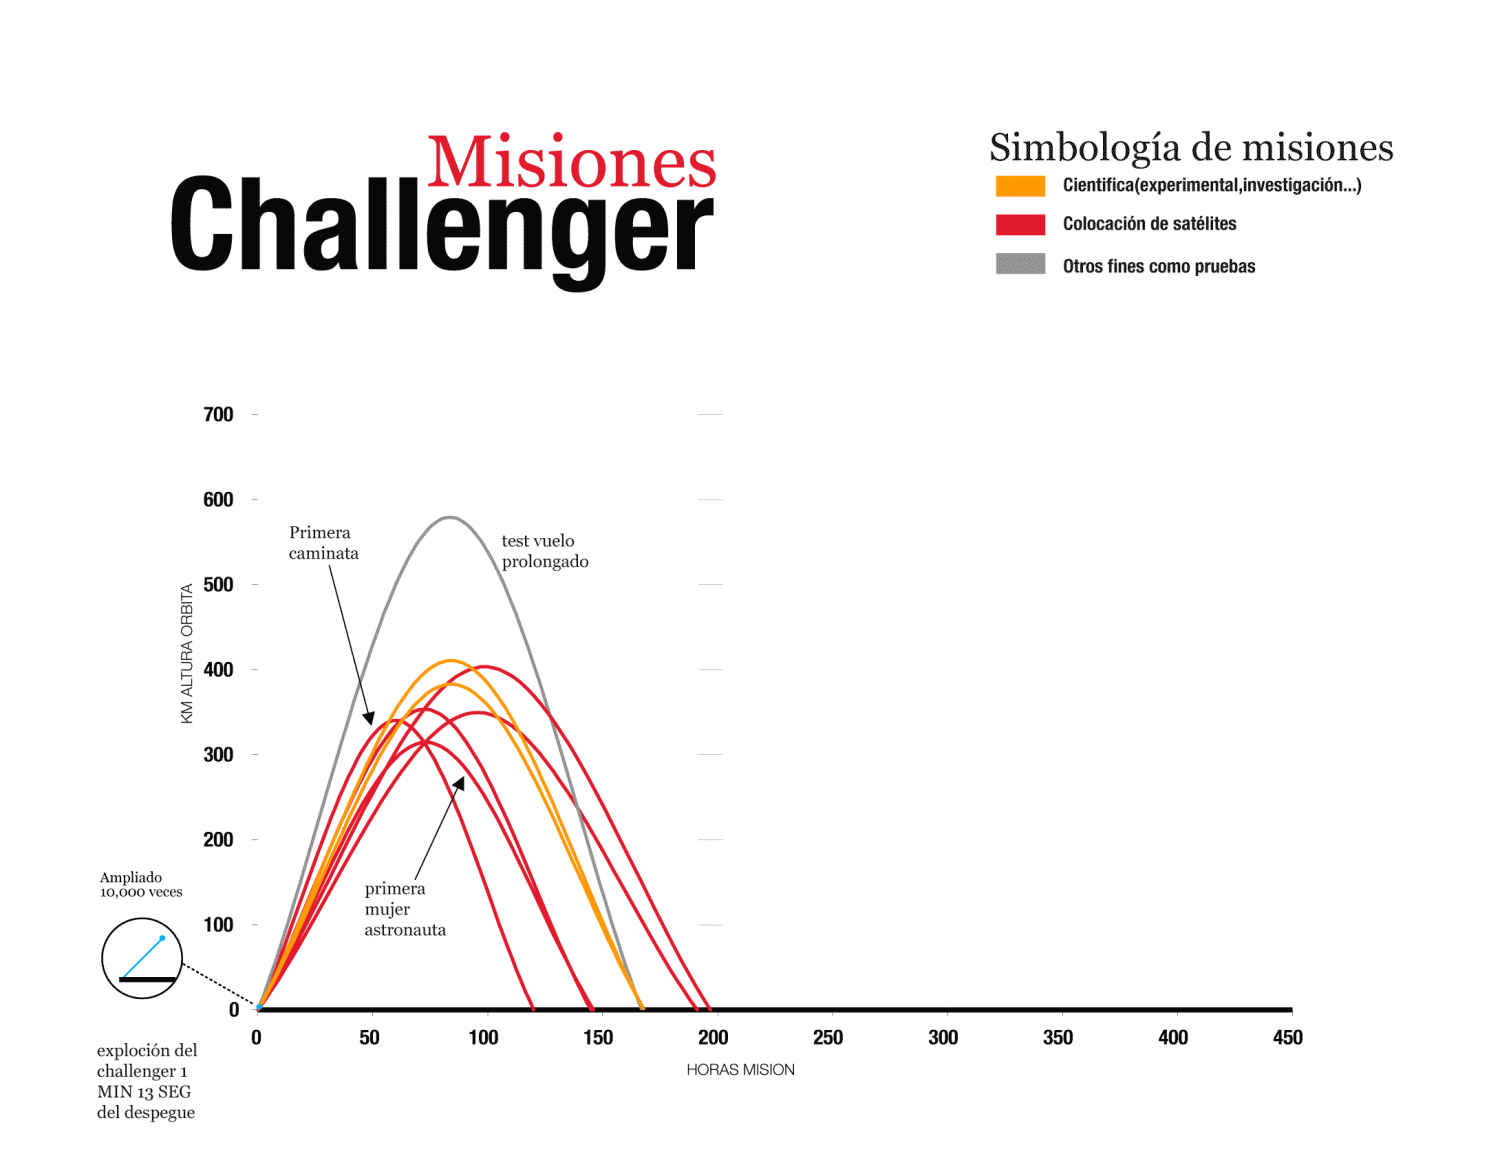 Misiones del Challenger Infographic